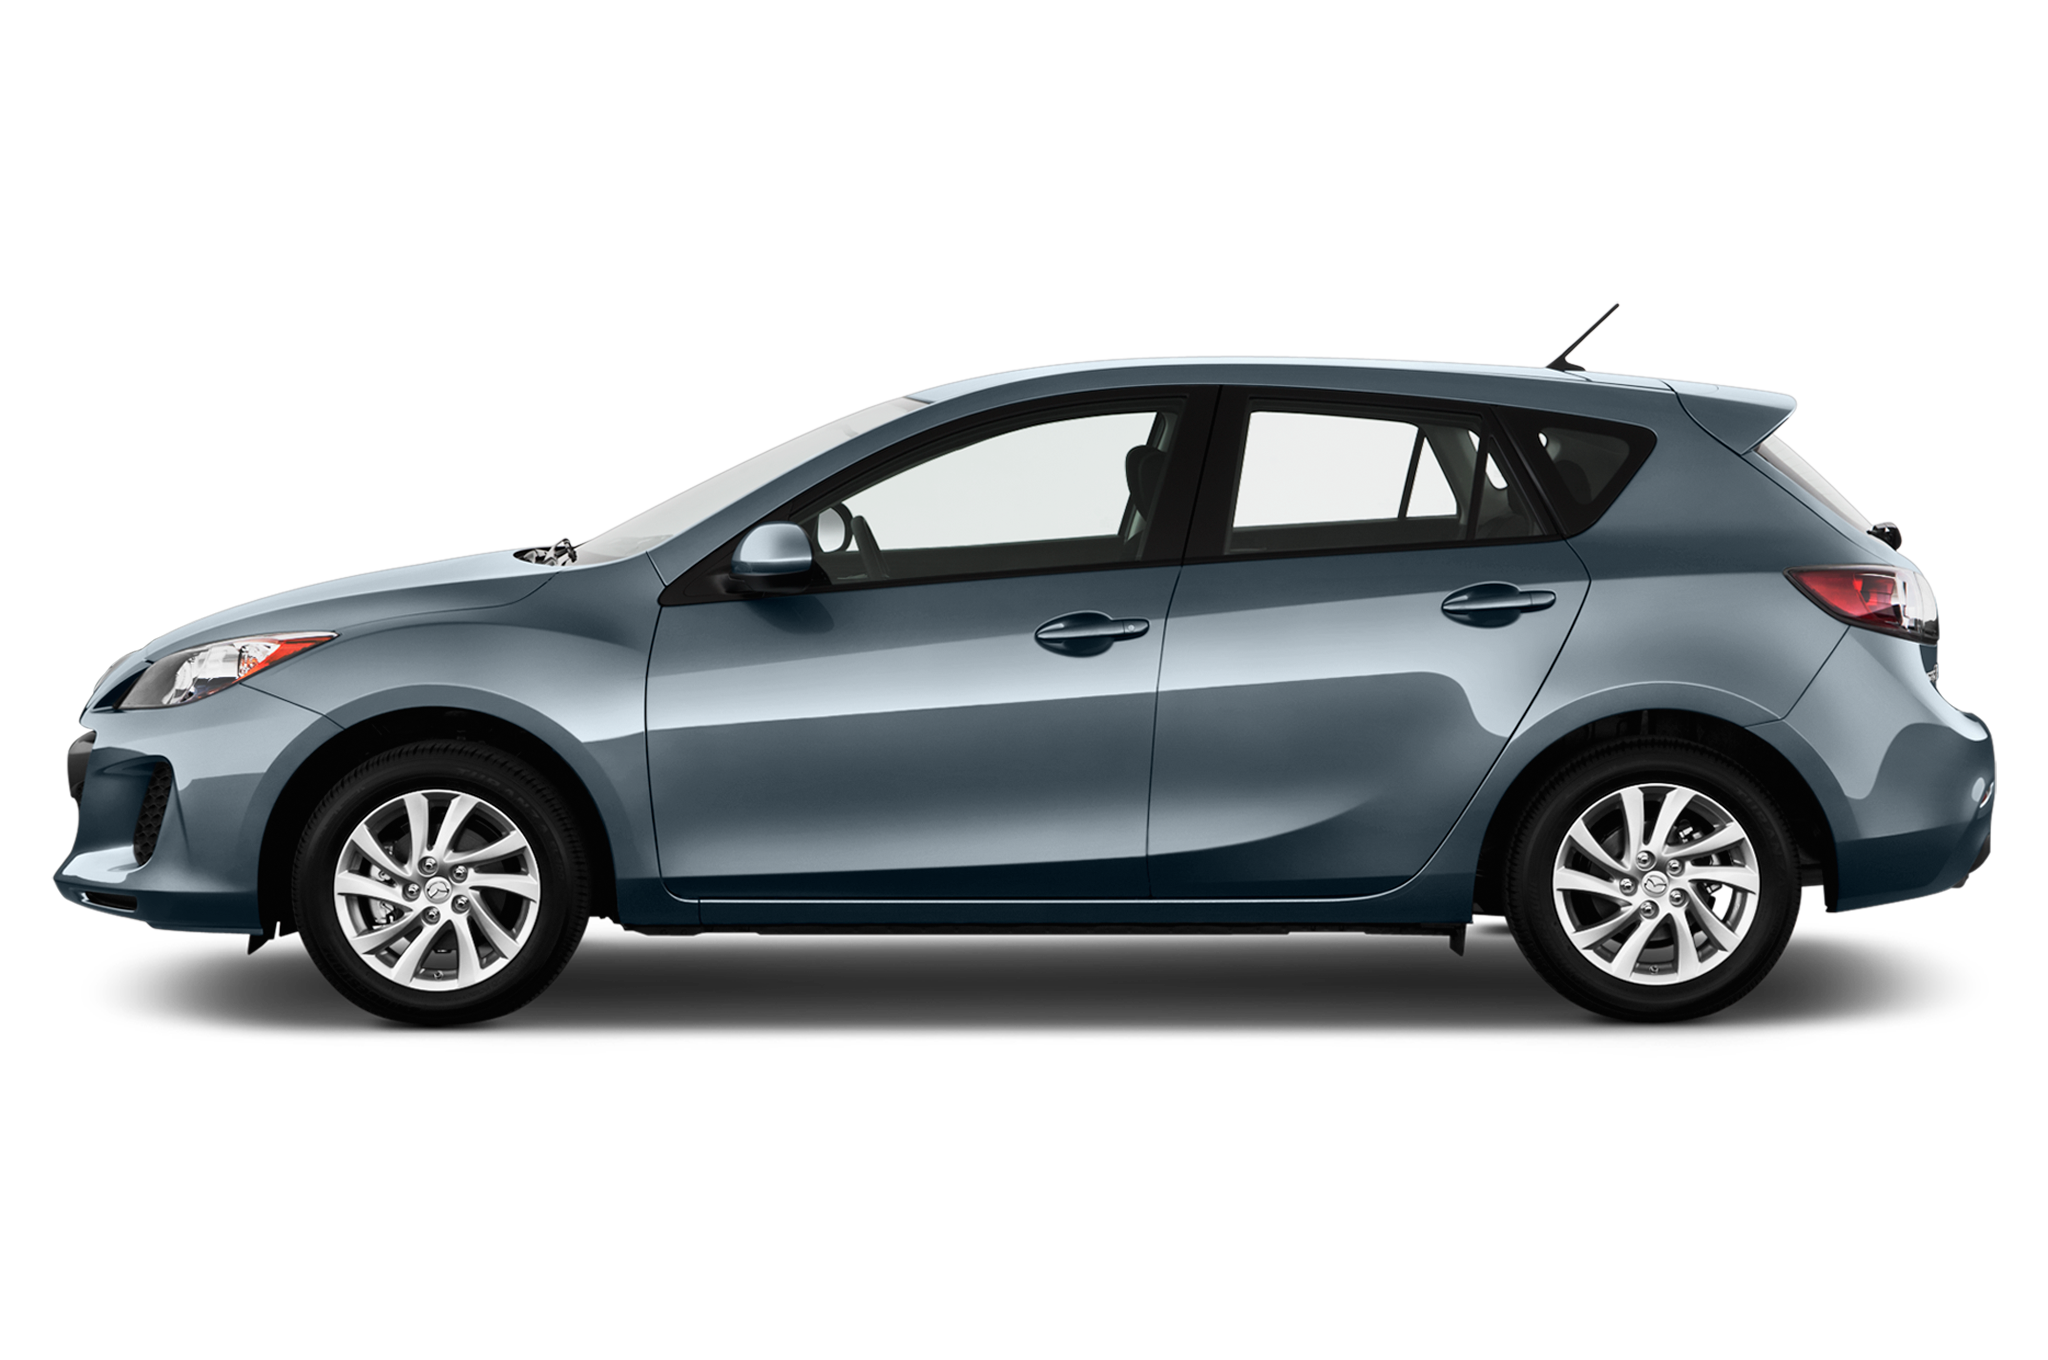 http://st.automobilemag.com/uploads/sites/10/2015/11/2012-mazda-mazda3-s-touring-5-door-at-hatchback-side-view.png